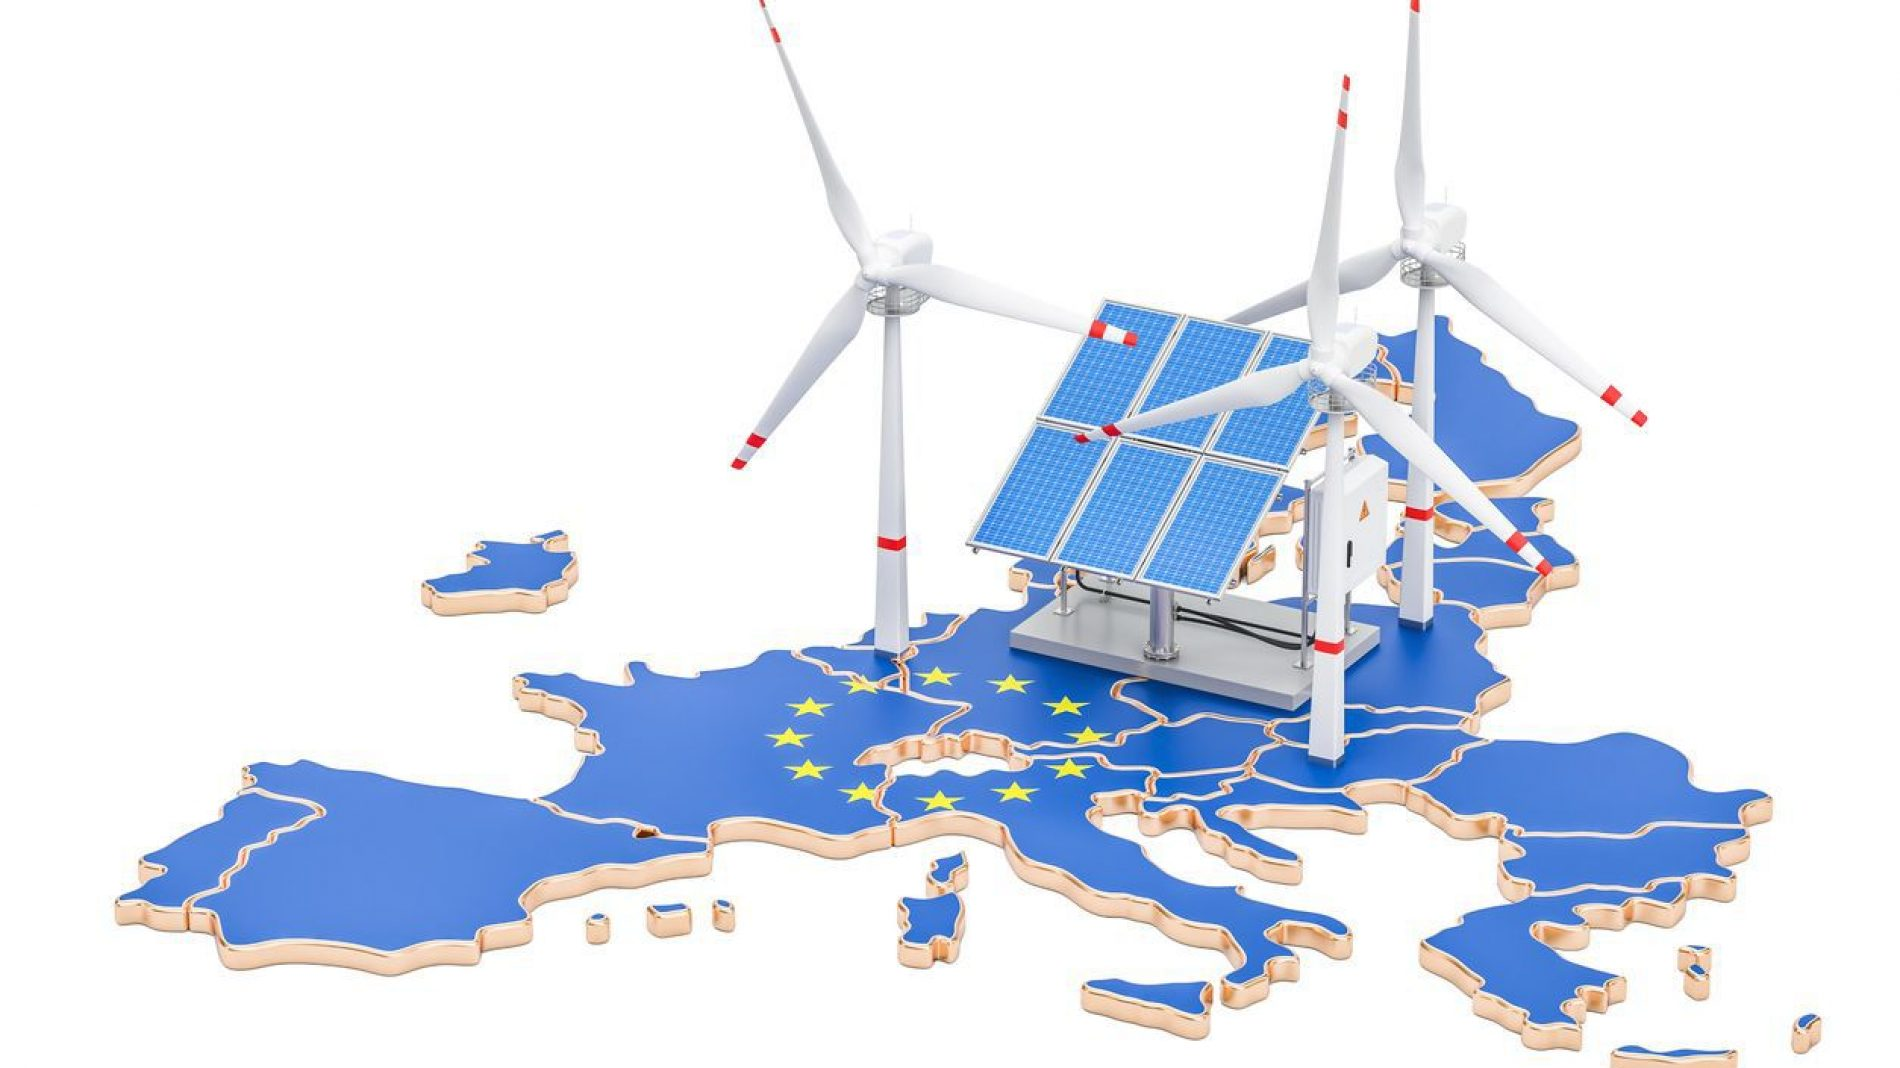 European map with renewable energy sources